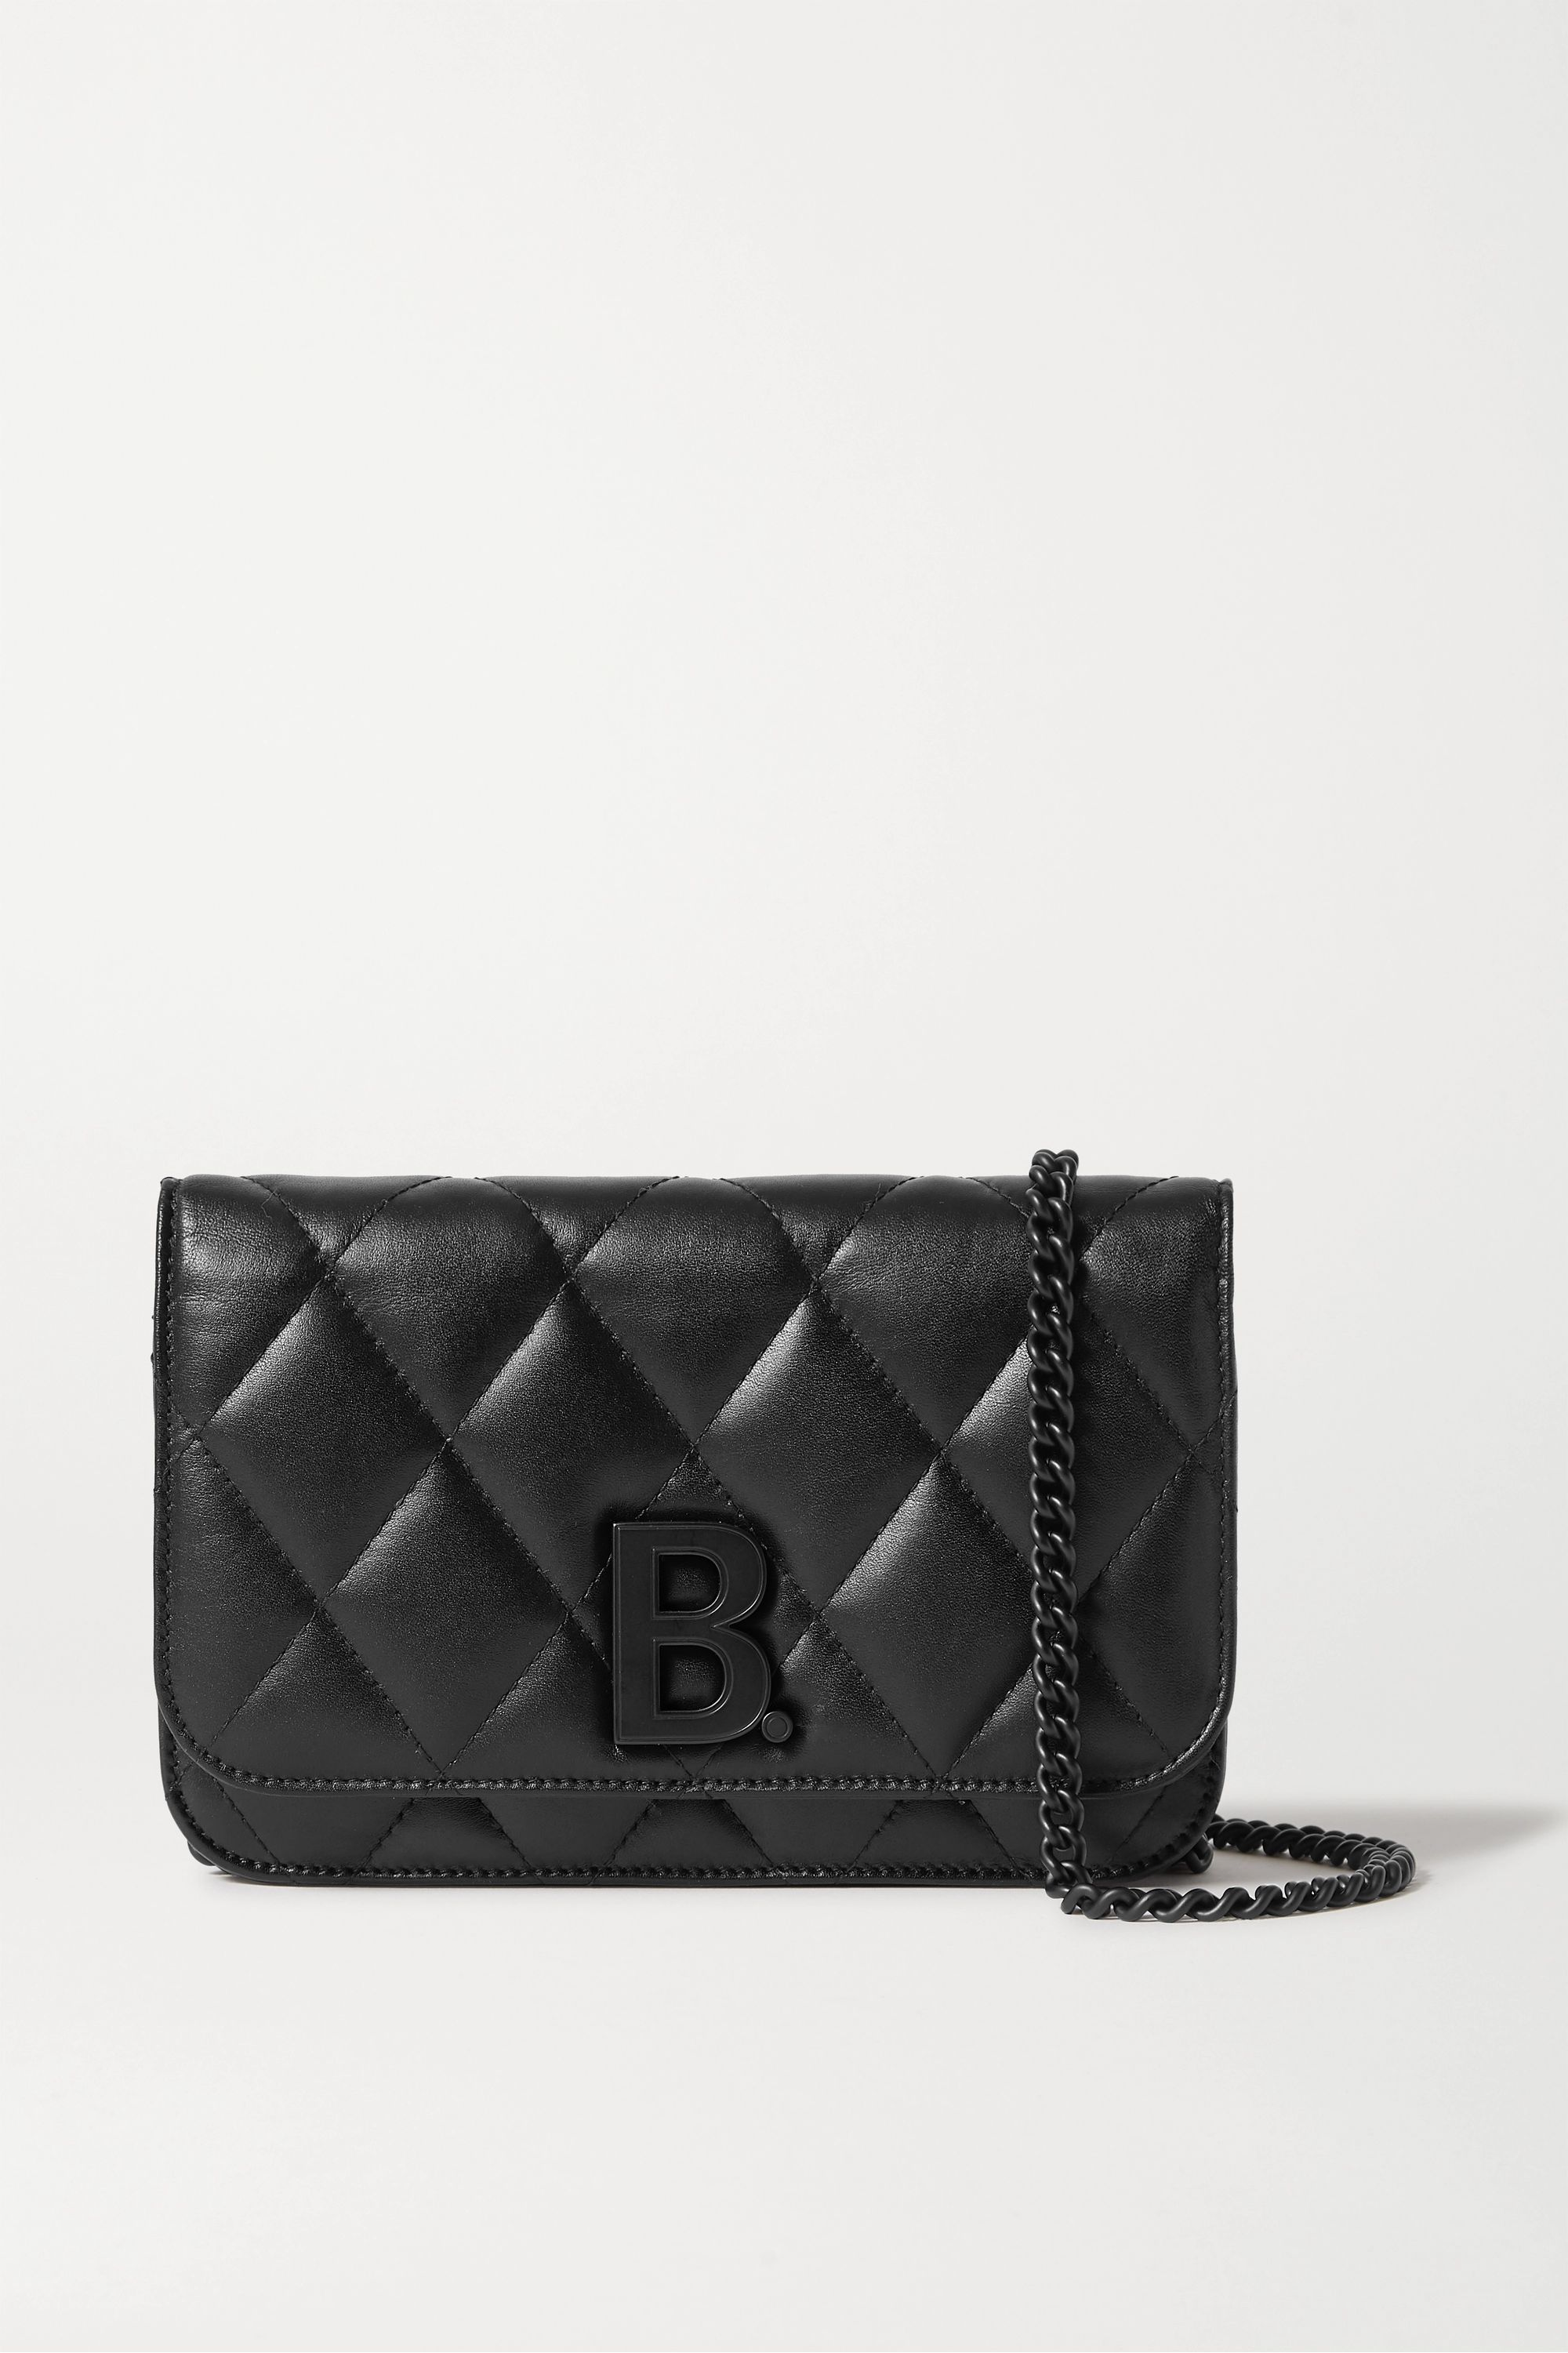 Balenciaga B Dot quilted leather shoulder bag